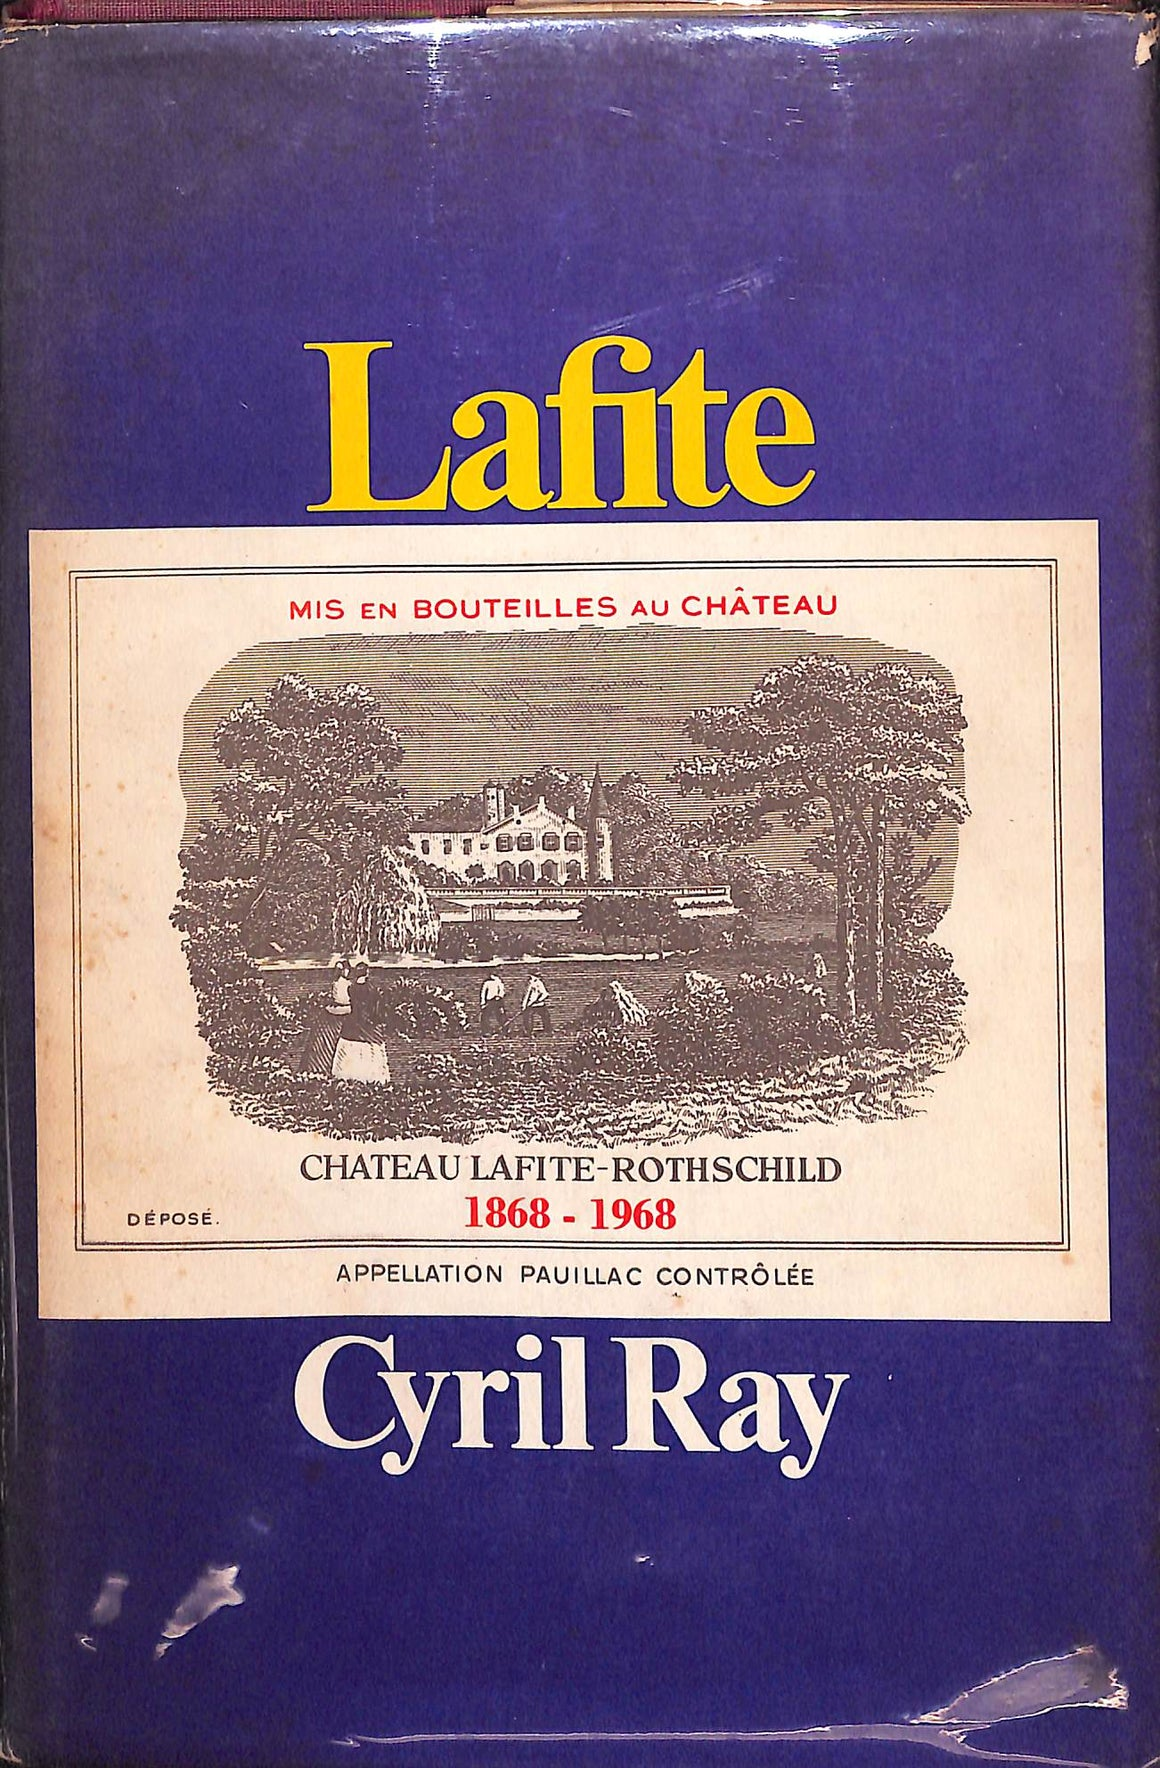 Lafite: The Story of Chateau Lafite-Rothschild